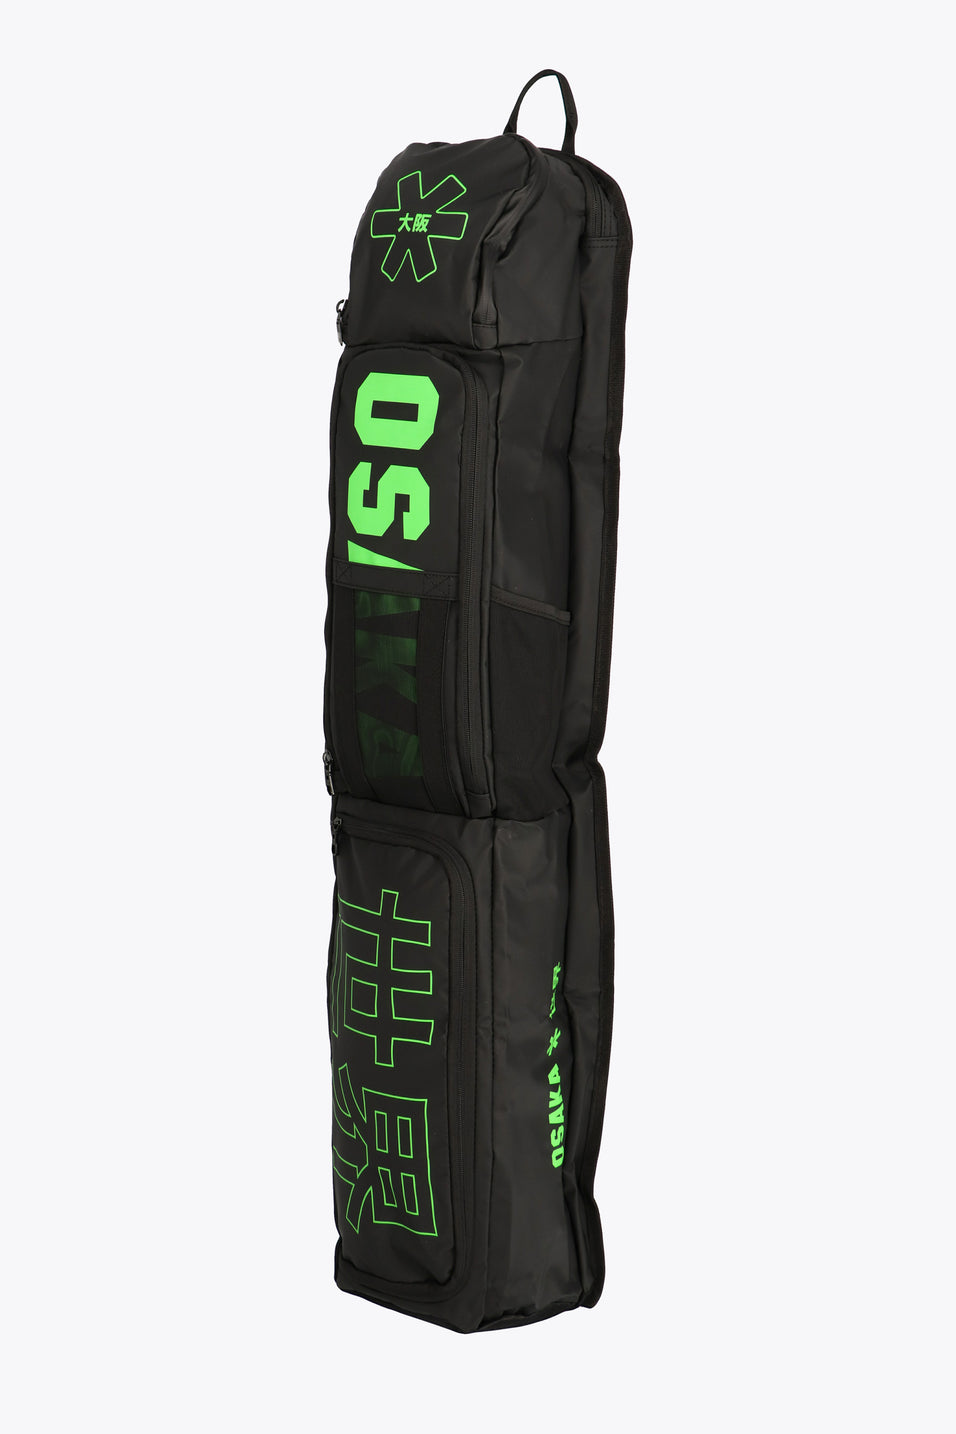 Pro Tour Stickbag Medium - Iconic Black